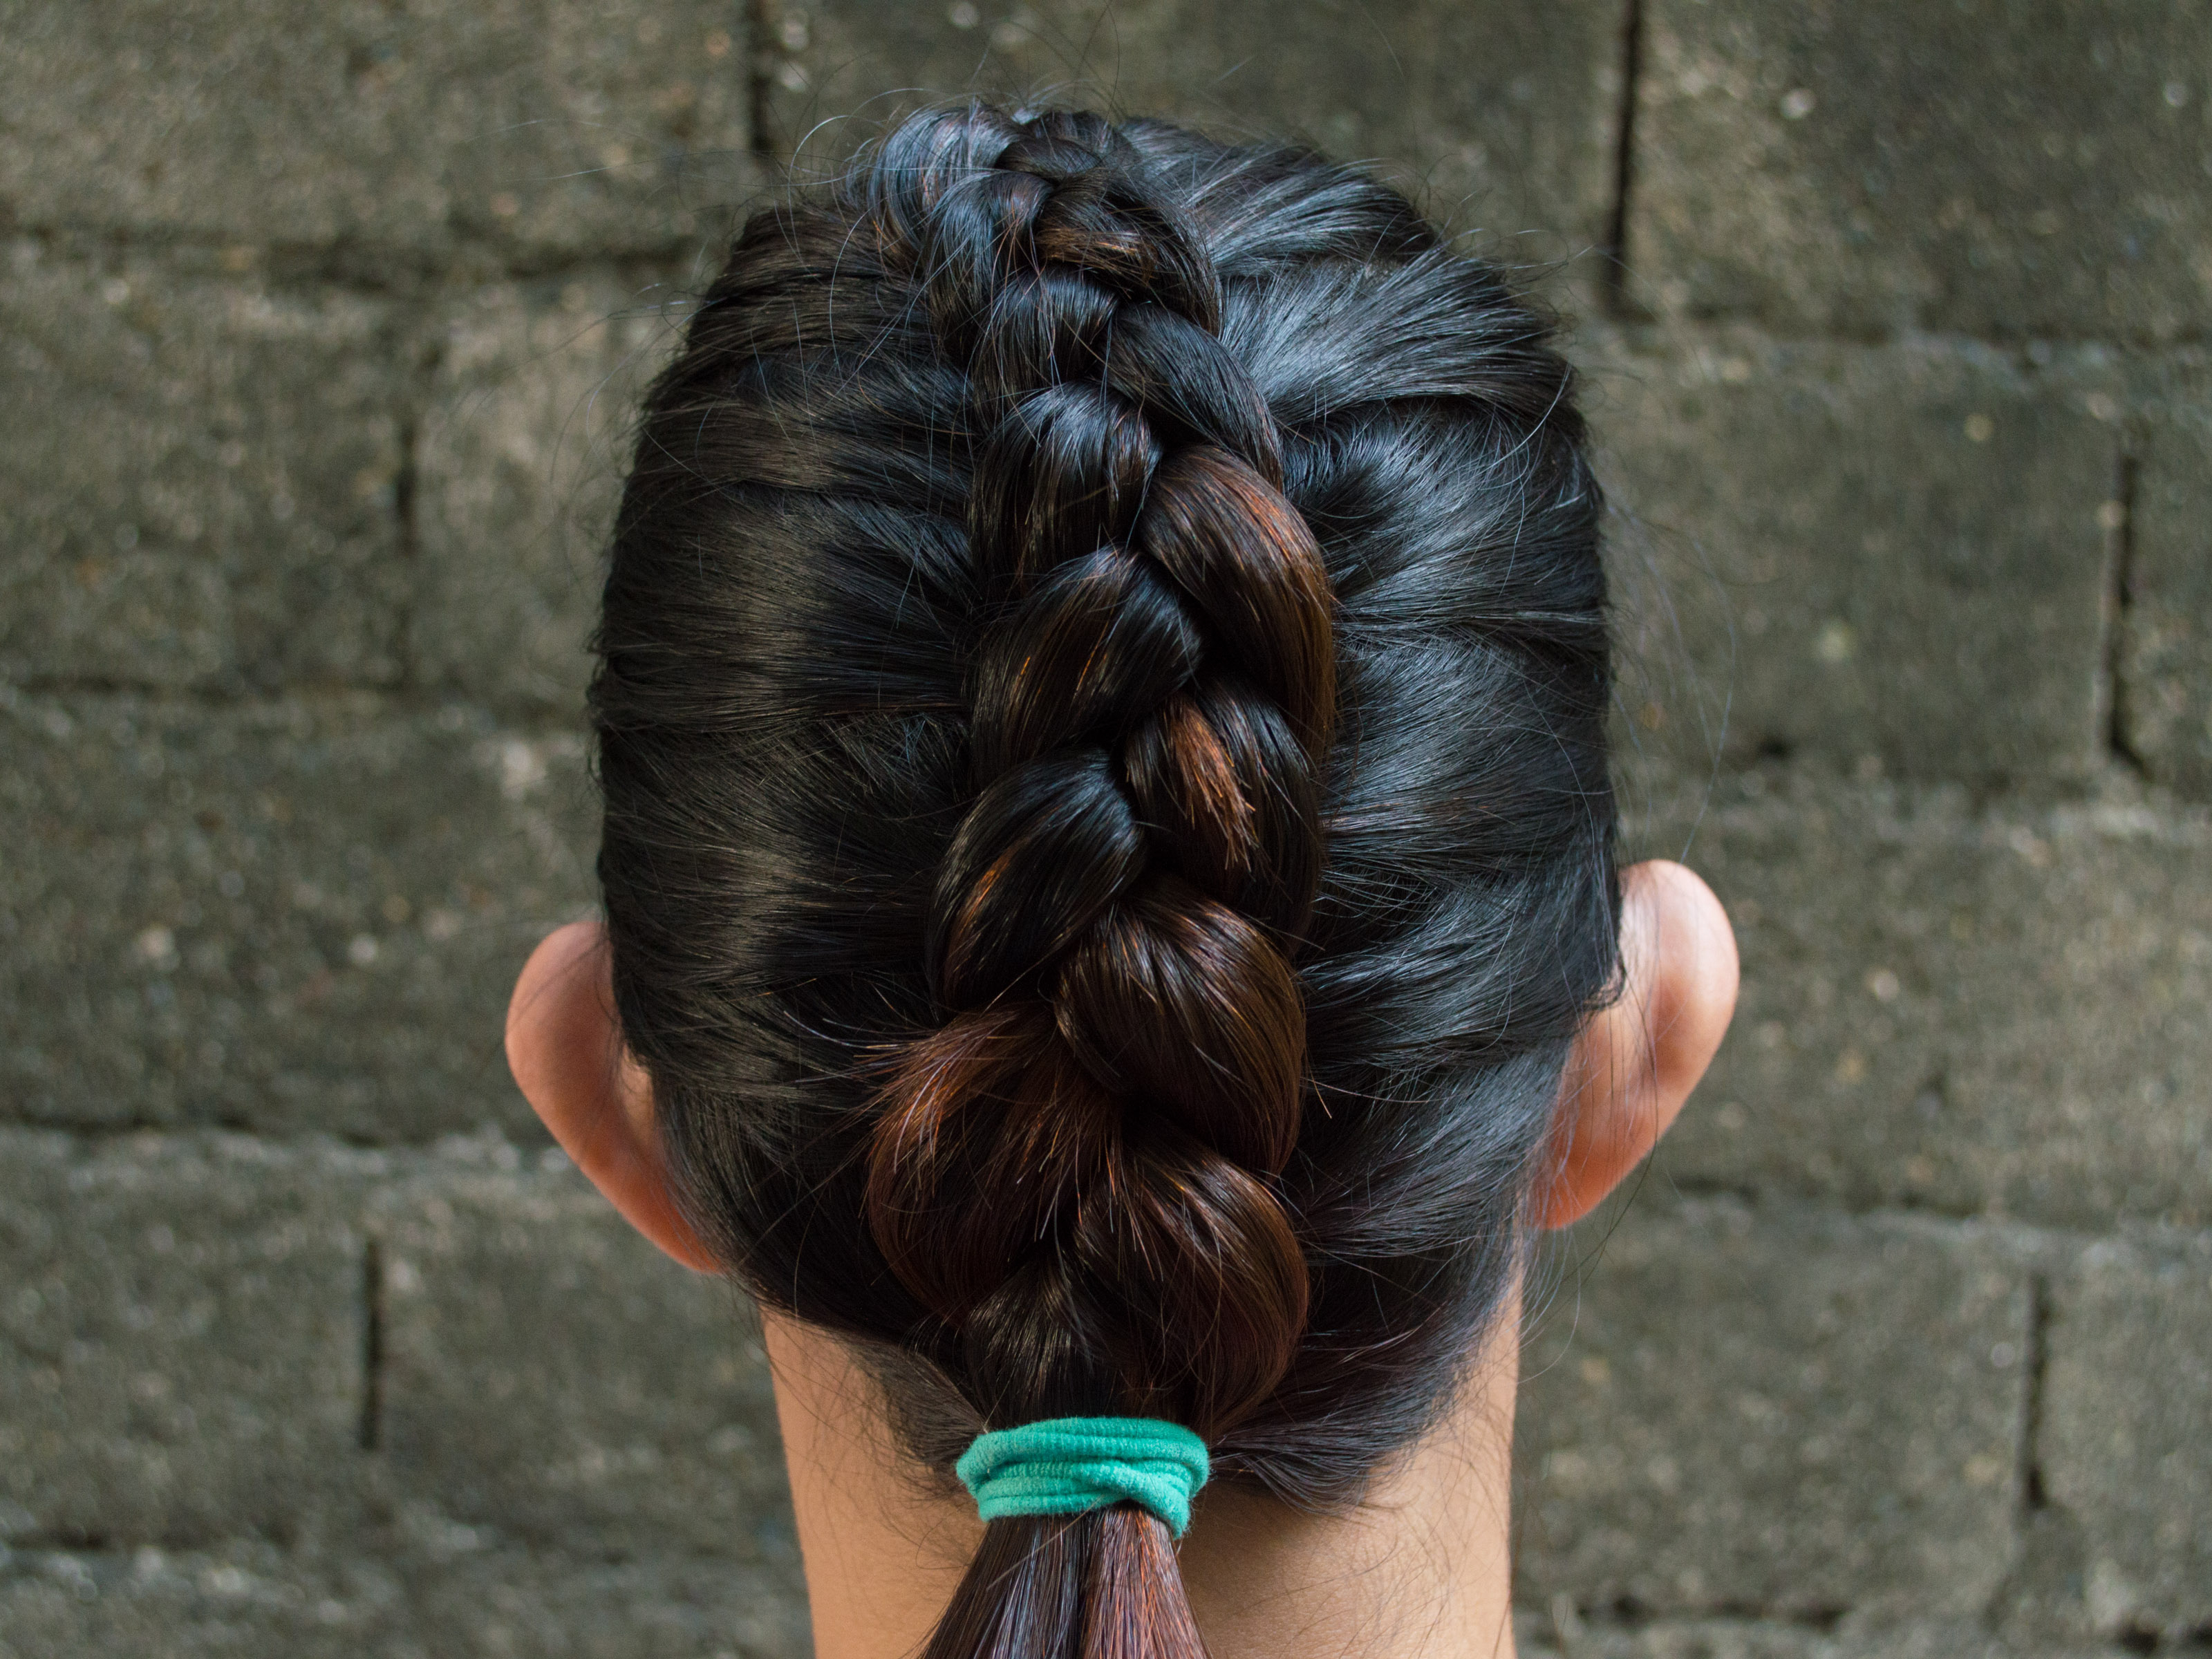 How To Do A Reverse French Braid: 6 Steps (With Pictures) With Regard To Well Known Side Pony And Raised Under Braid Hairstyles (View 12 of 20)